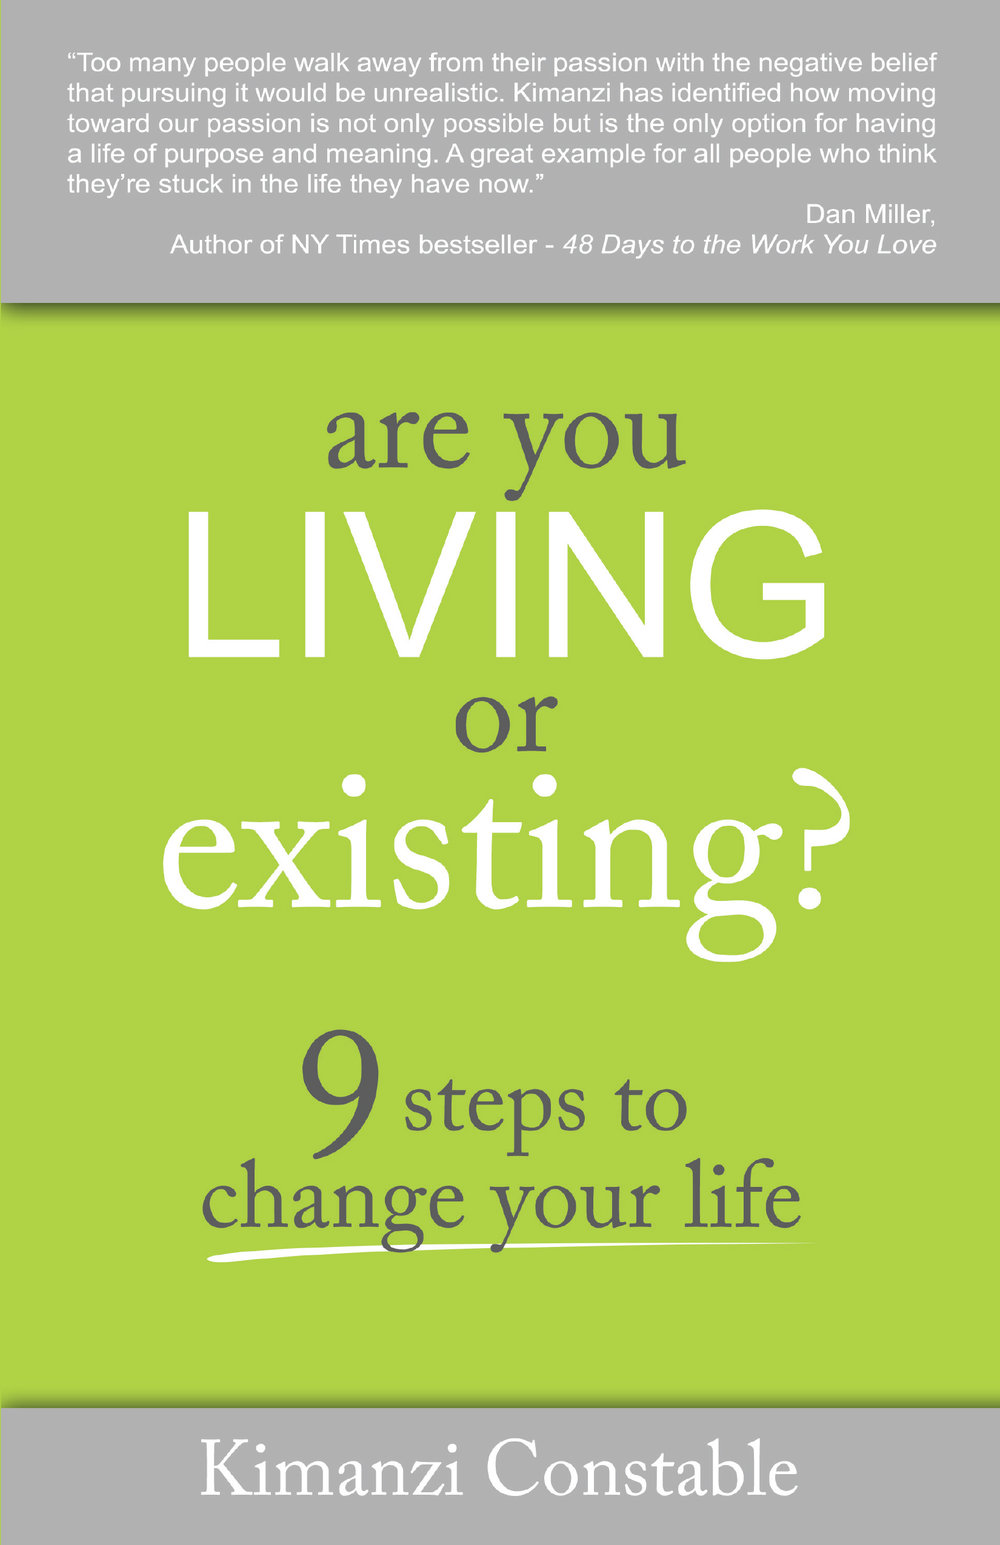 Are You Living or Existing? - Kimanzi Constable